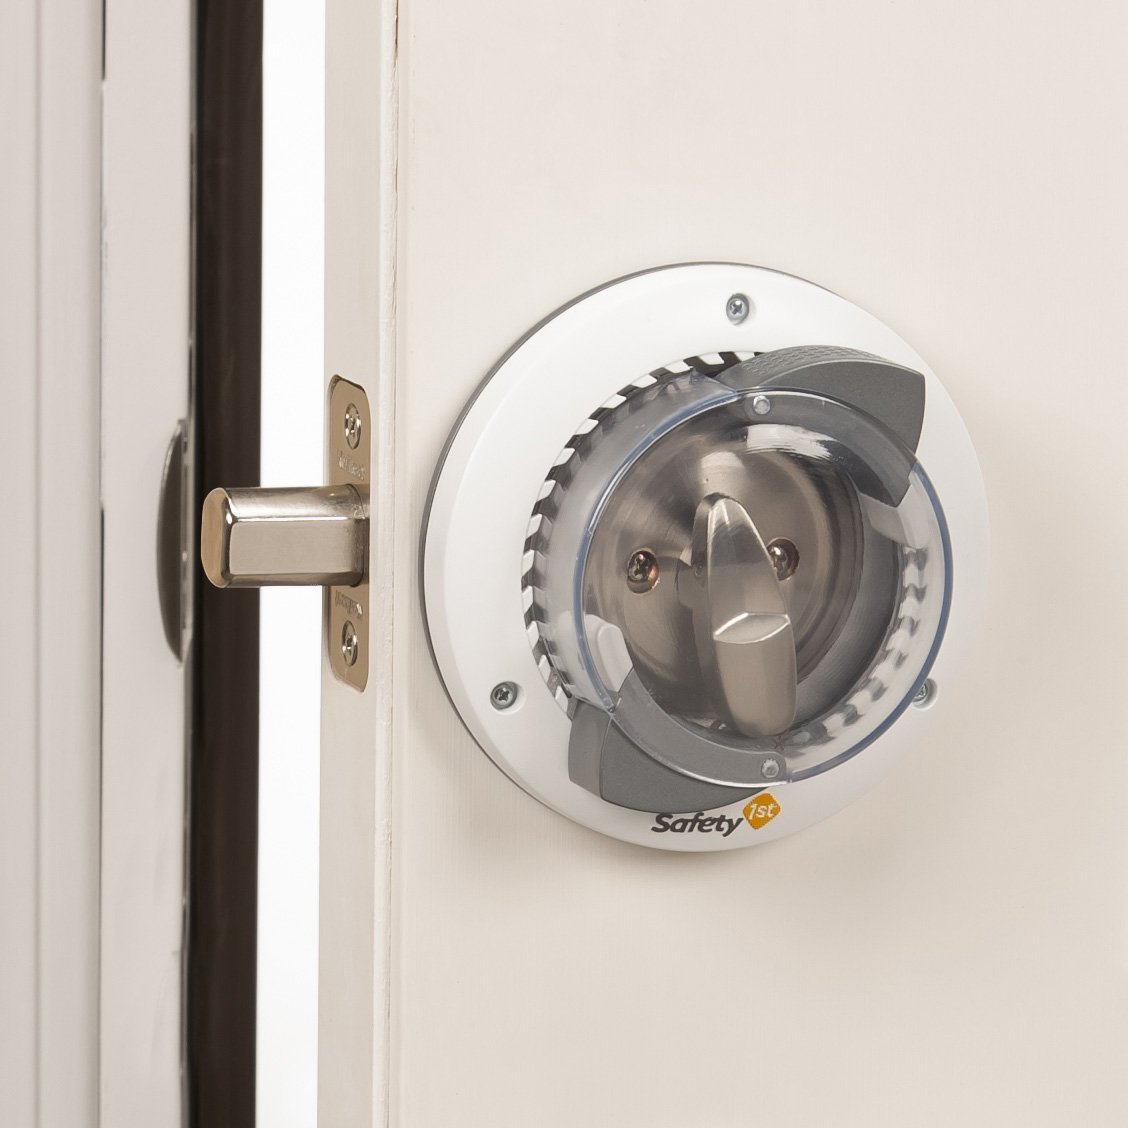 Safety 1st Secure Mount Deadbolt Lock - 2 Count by Safety 1st (Image #4)